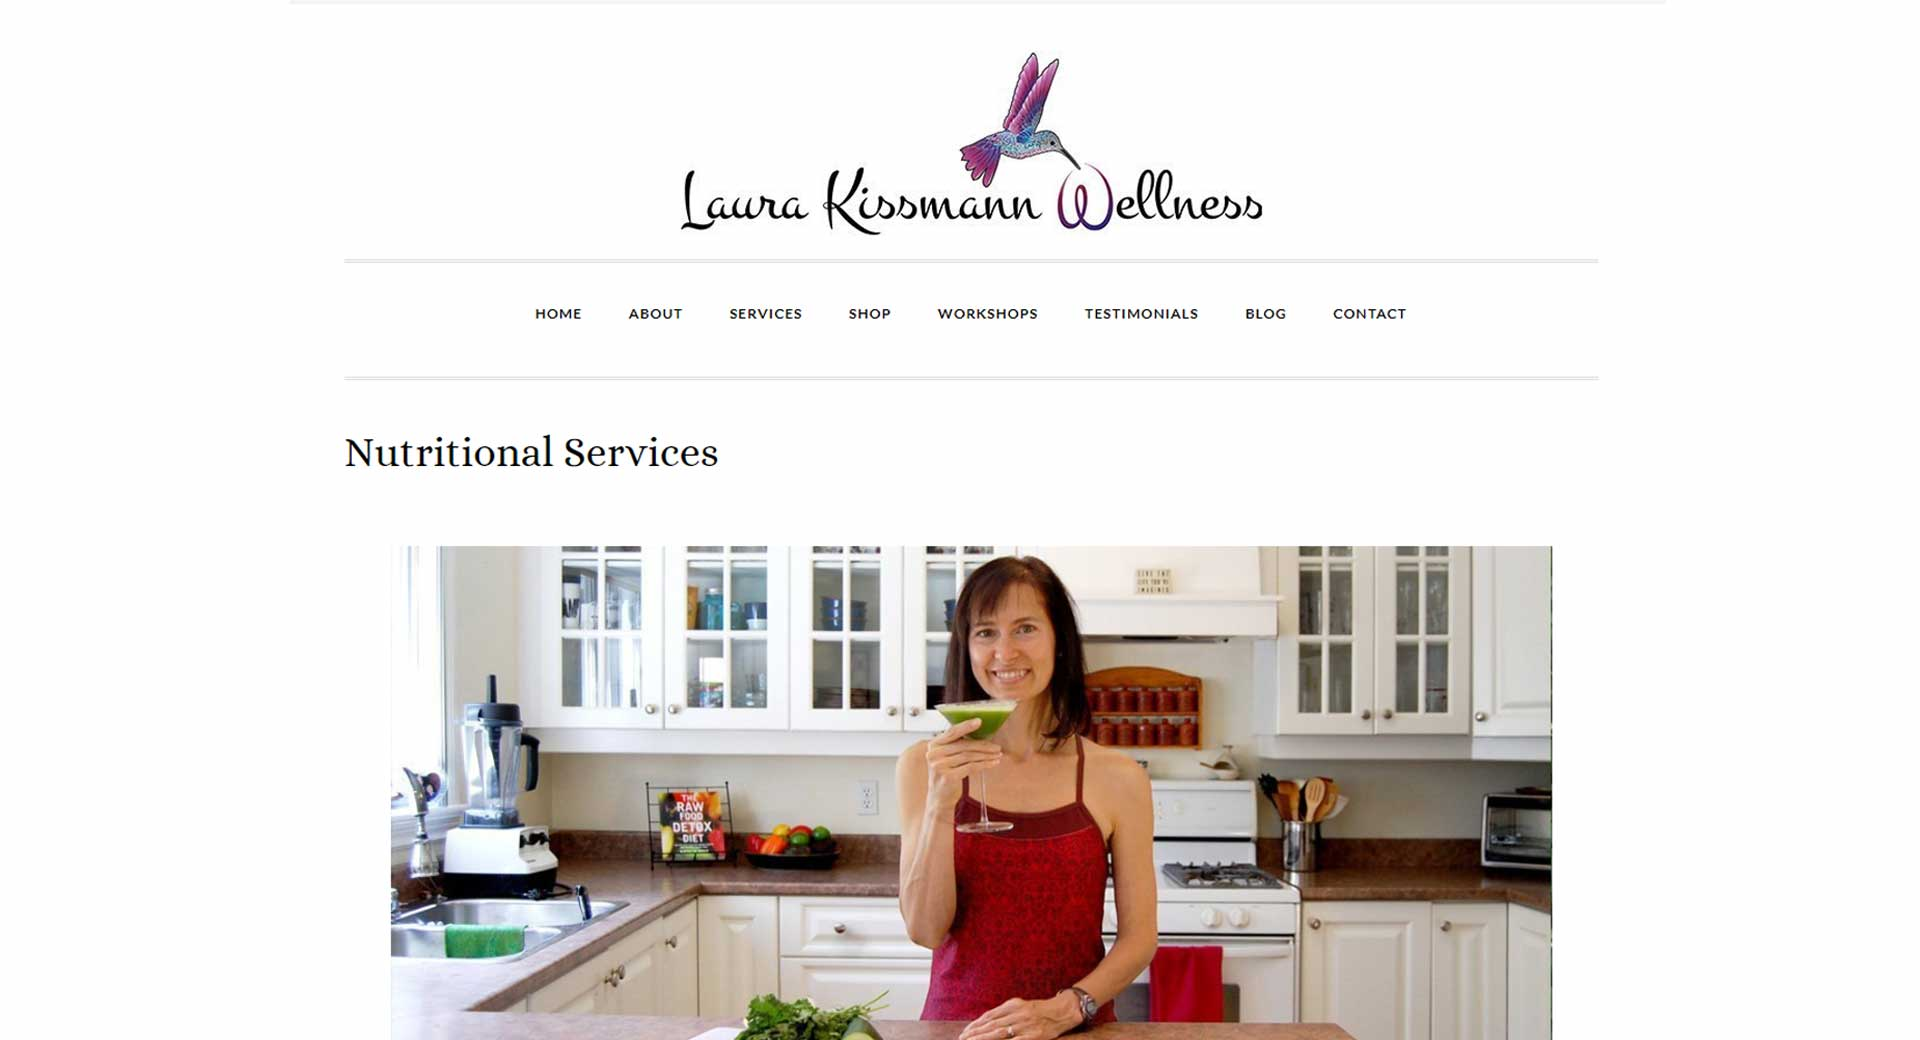 Website photography showing Laura Kissmann inviting people to experience the energy and joy of eating well.